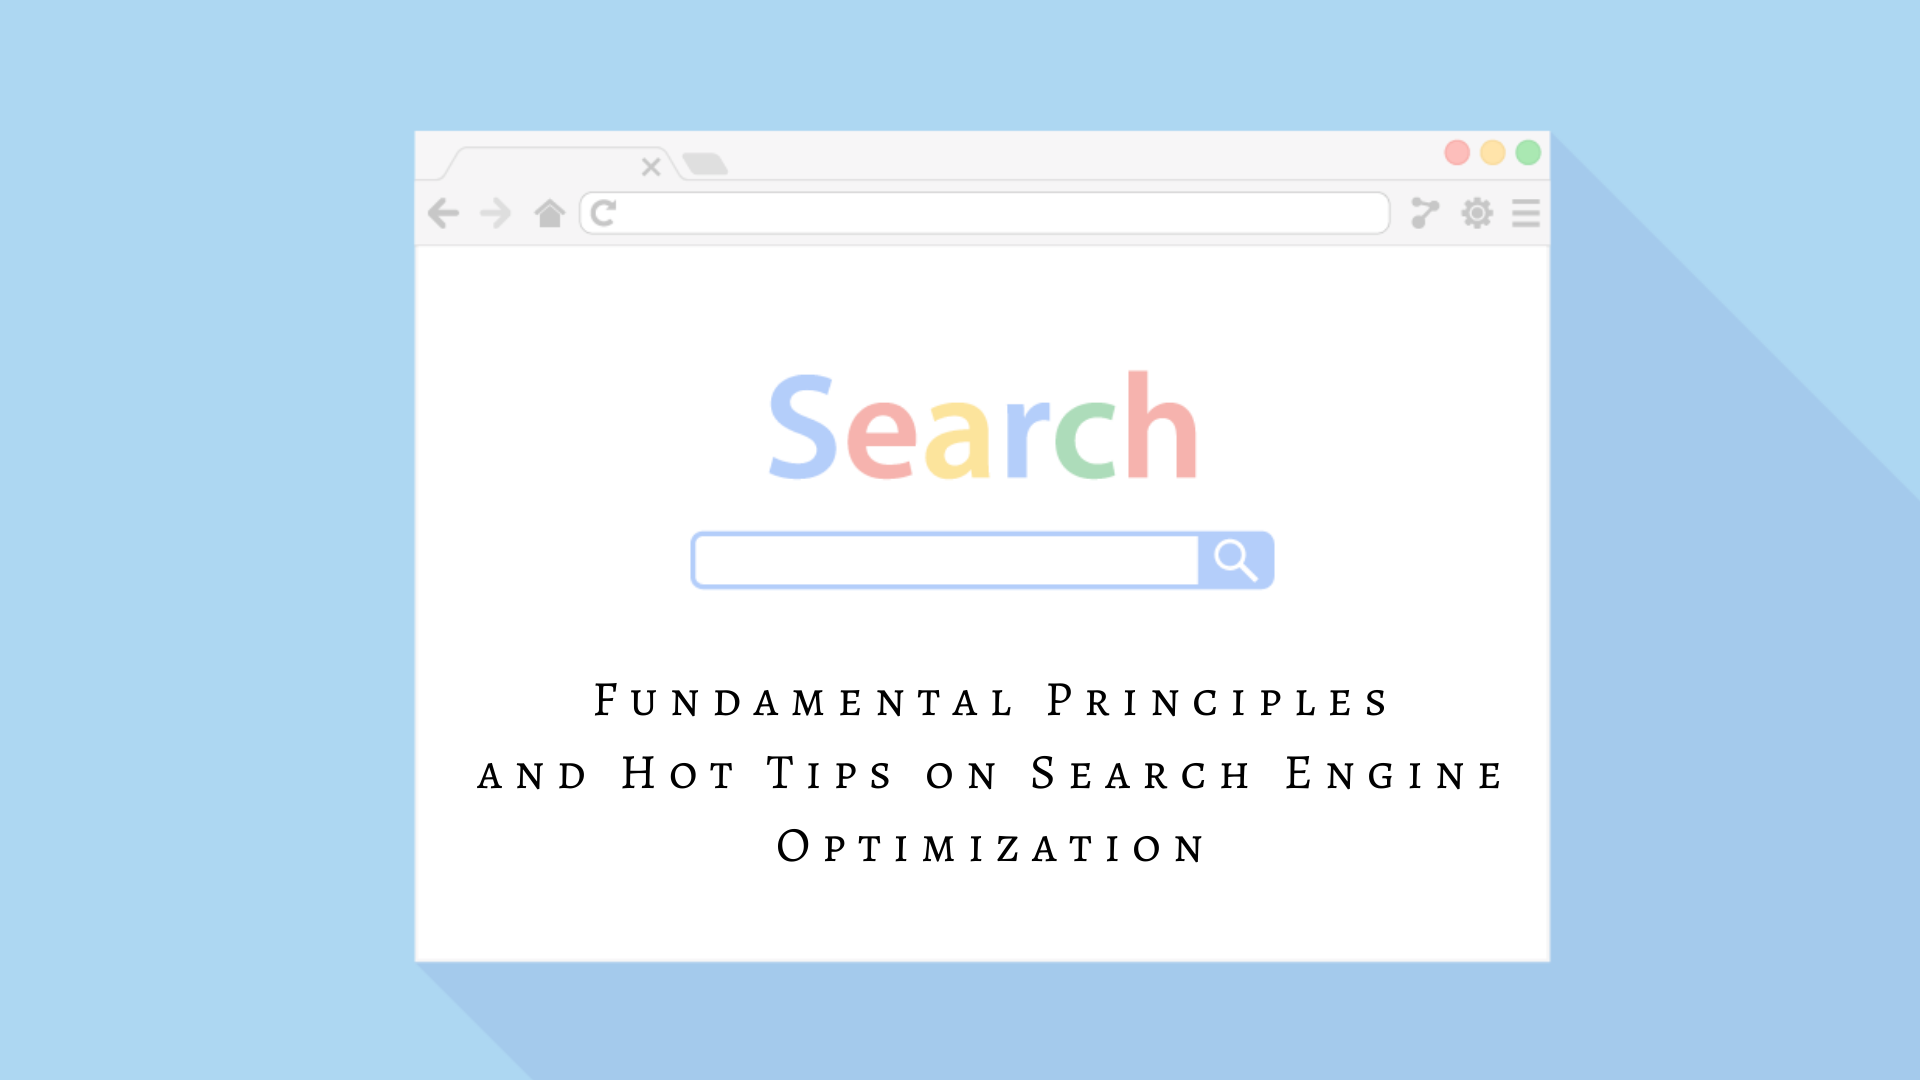 Fundamental Principles and Hot Tips on Search Engine Optimization